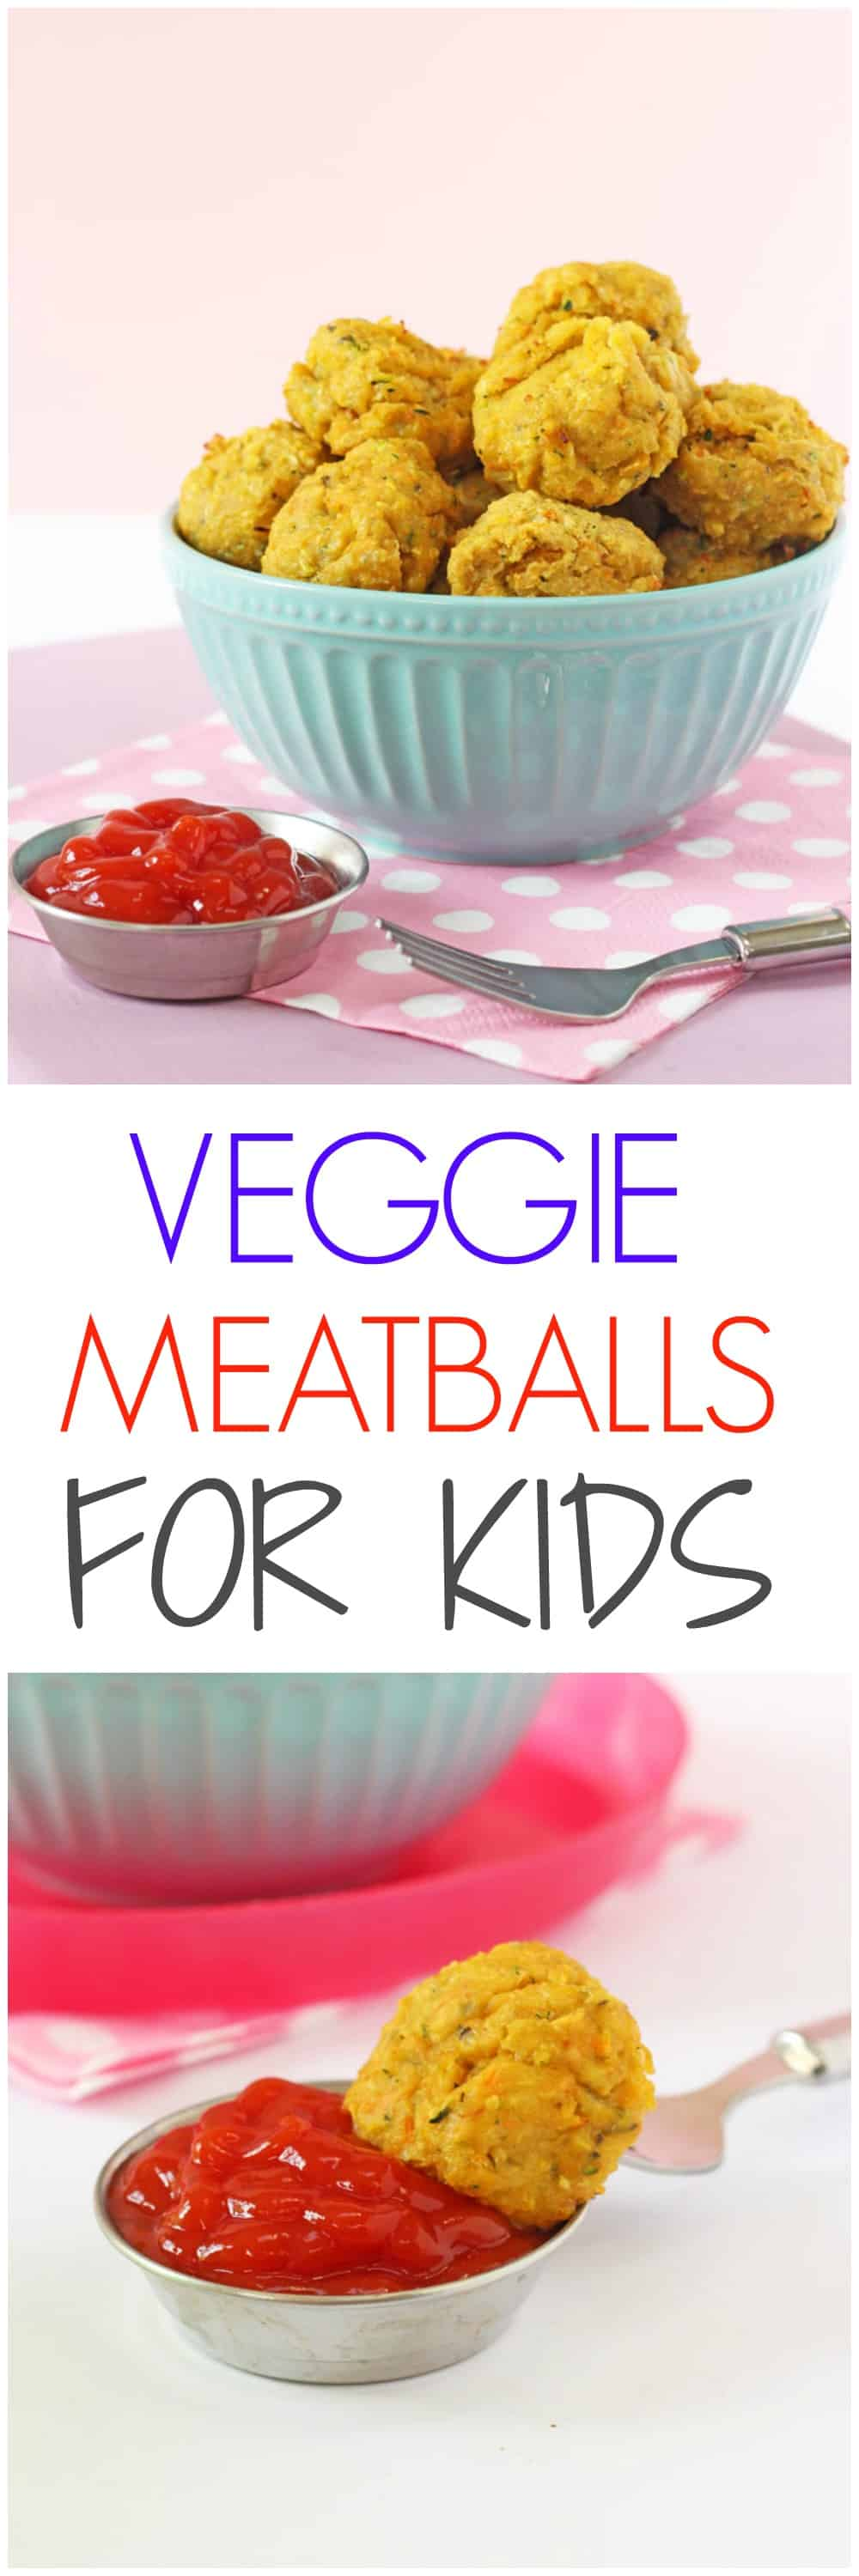 Veggie Meatballs For Kids My Fussy Eater Healthy Kids Recipes